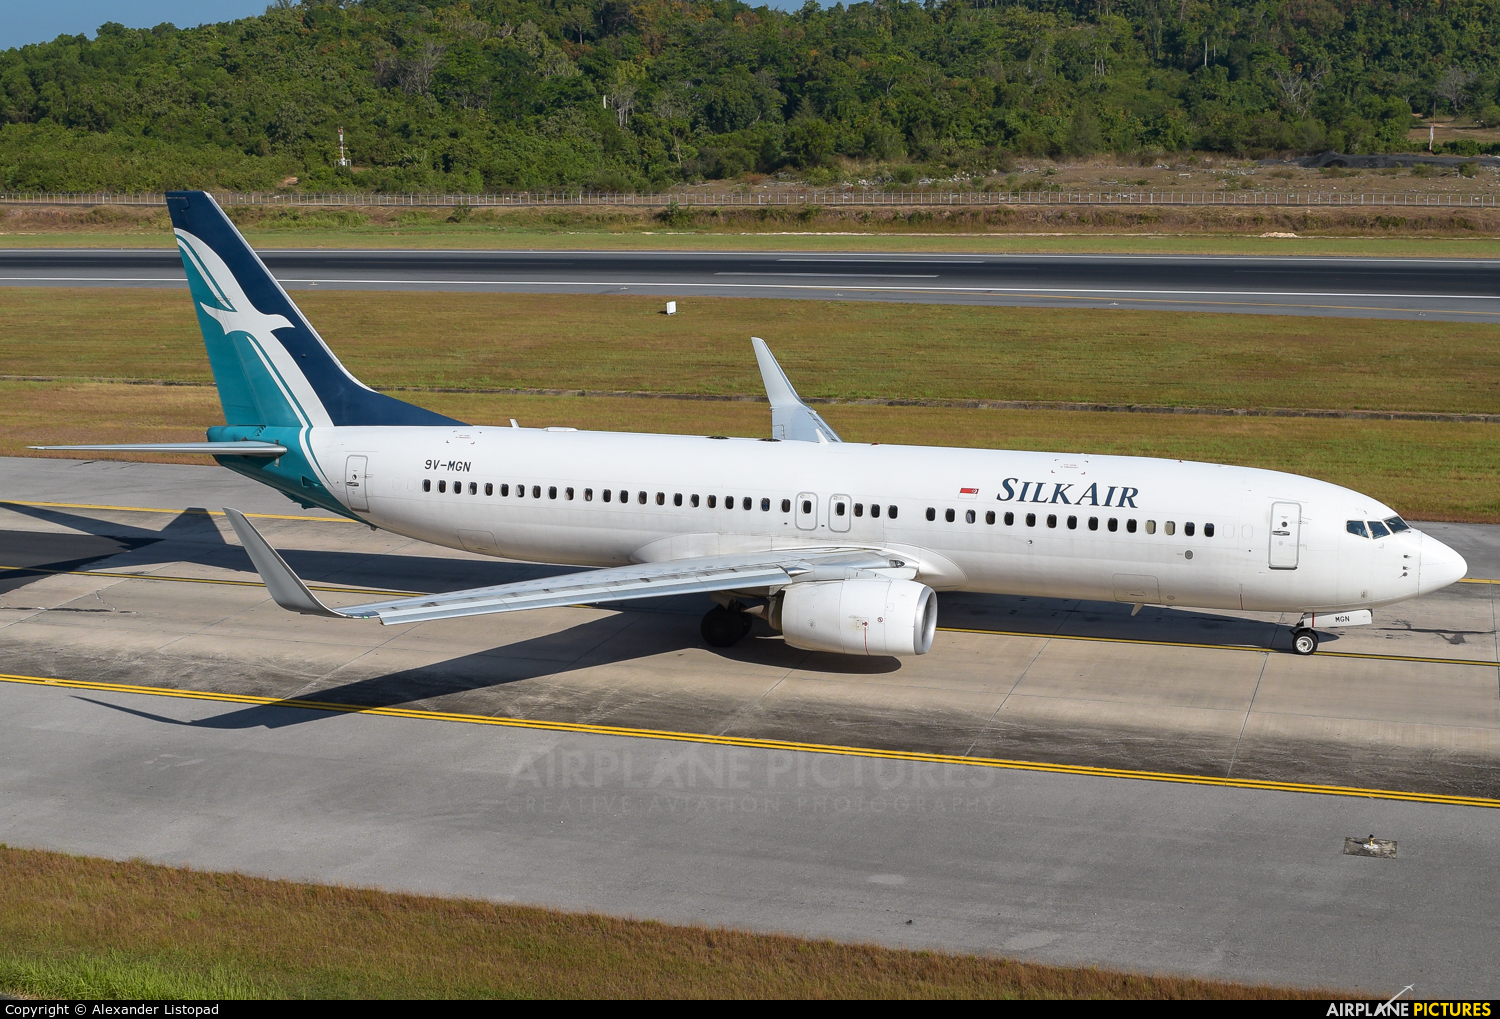 SilkAir 9V-MGN aircraft at Phuket